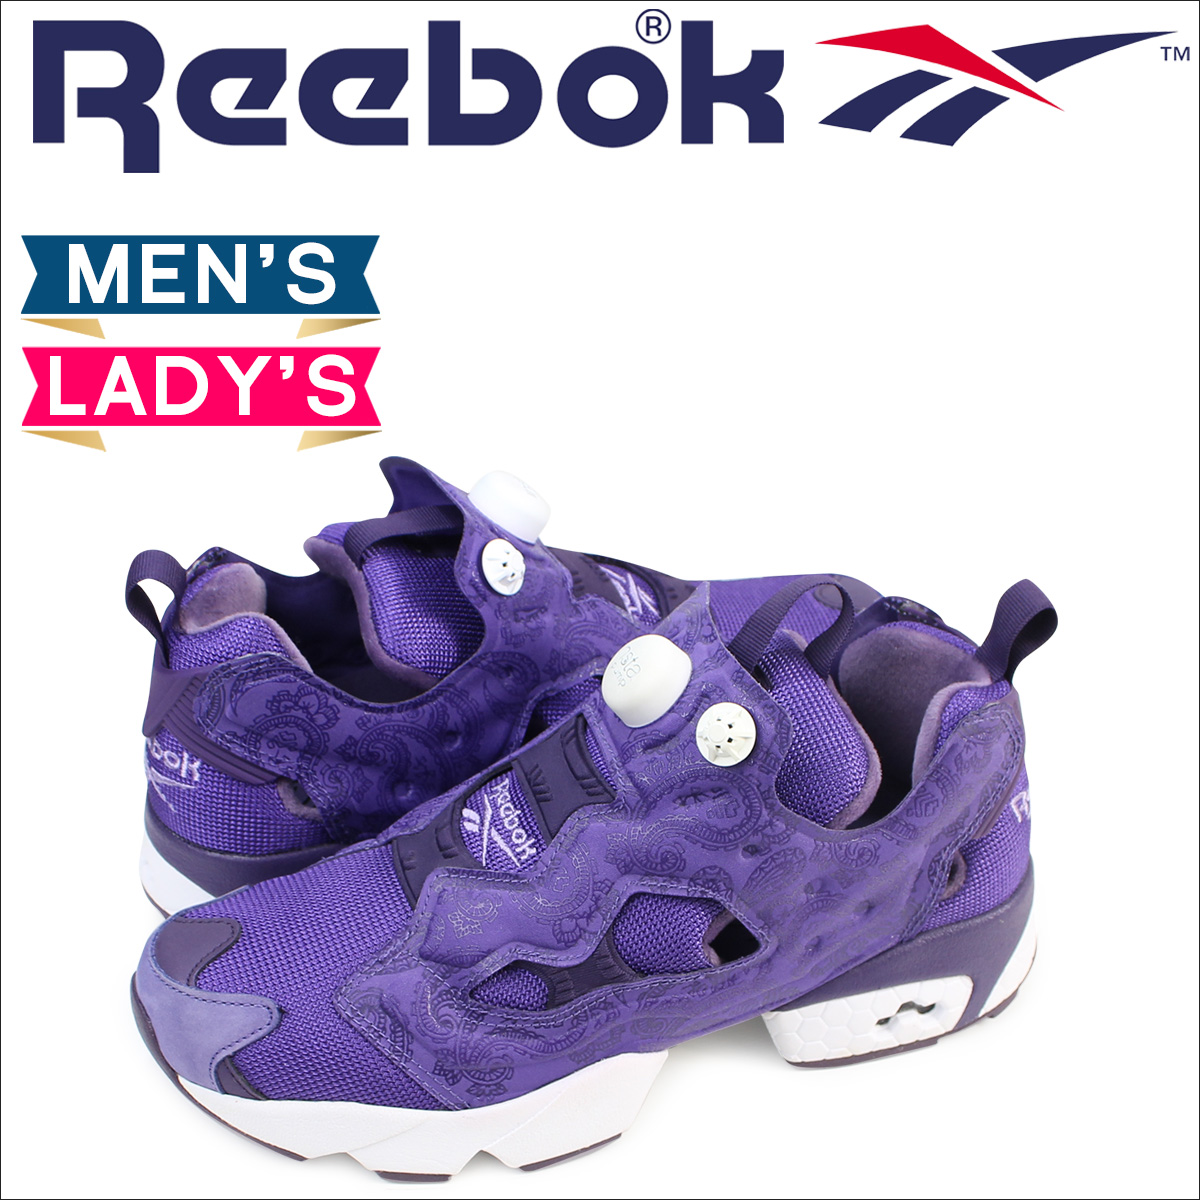 pump reebok ... the aerobics shoes for women, introduced in 1994,  MXPZVDA